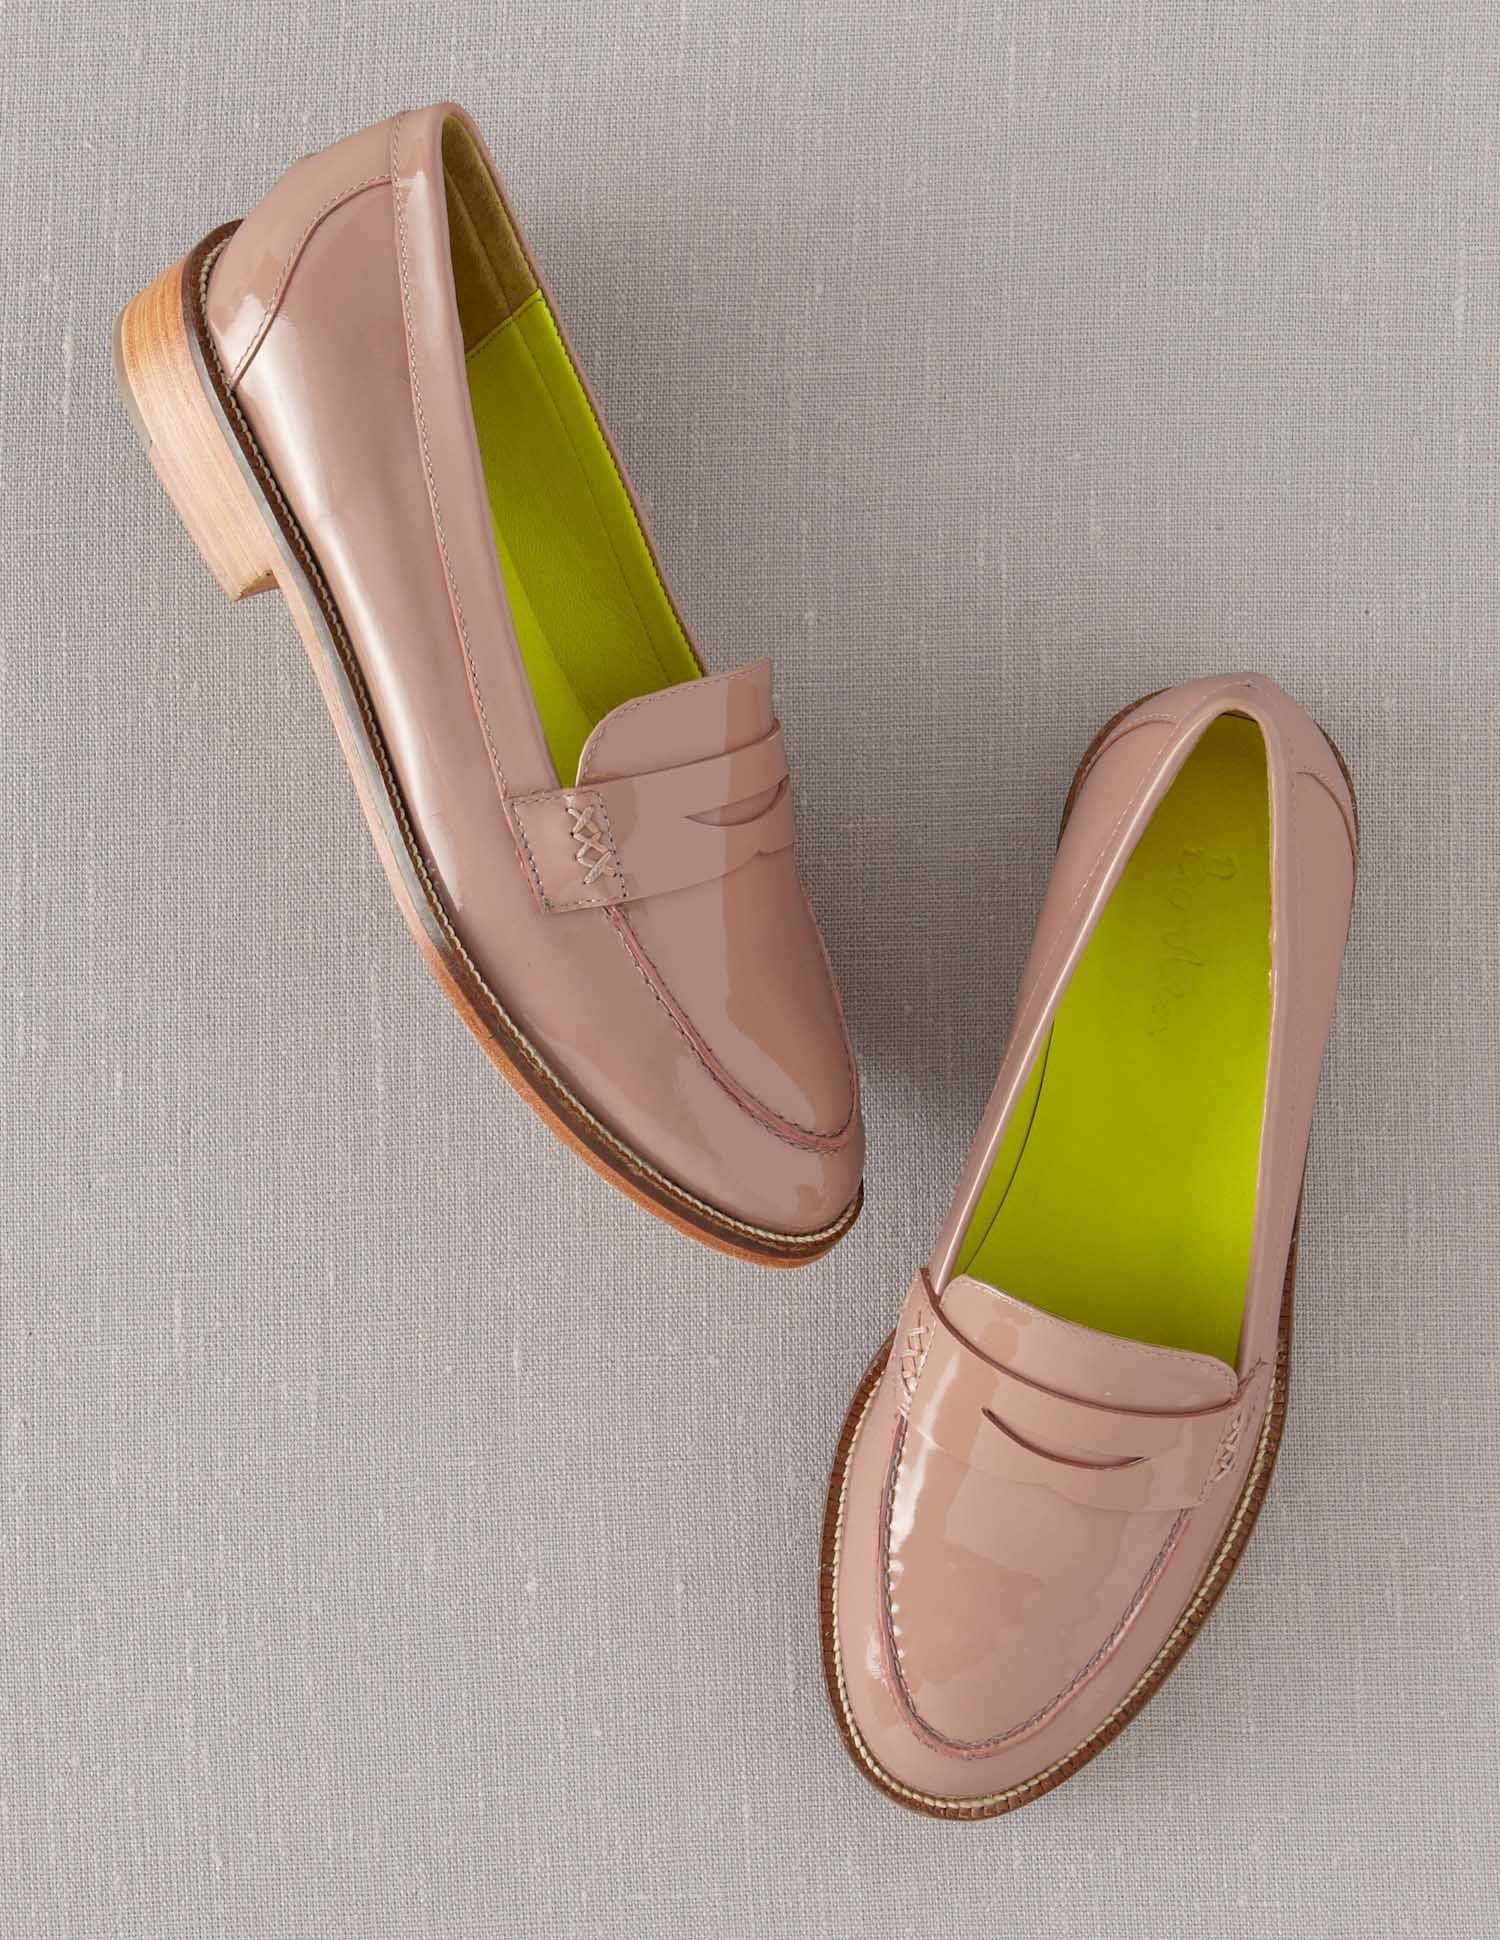 4d4b753e2aa Boden Women s Brand New Penny Loafers Shoes Champagne Pink Patent Leather